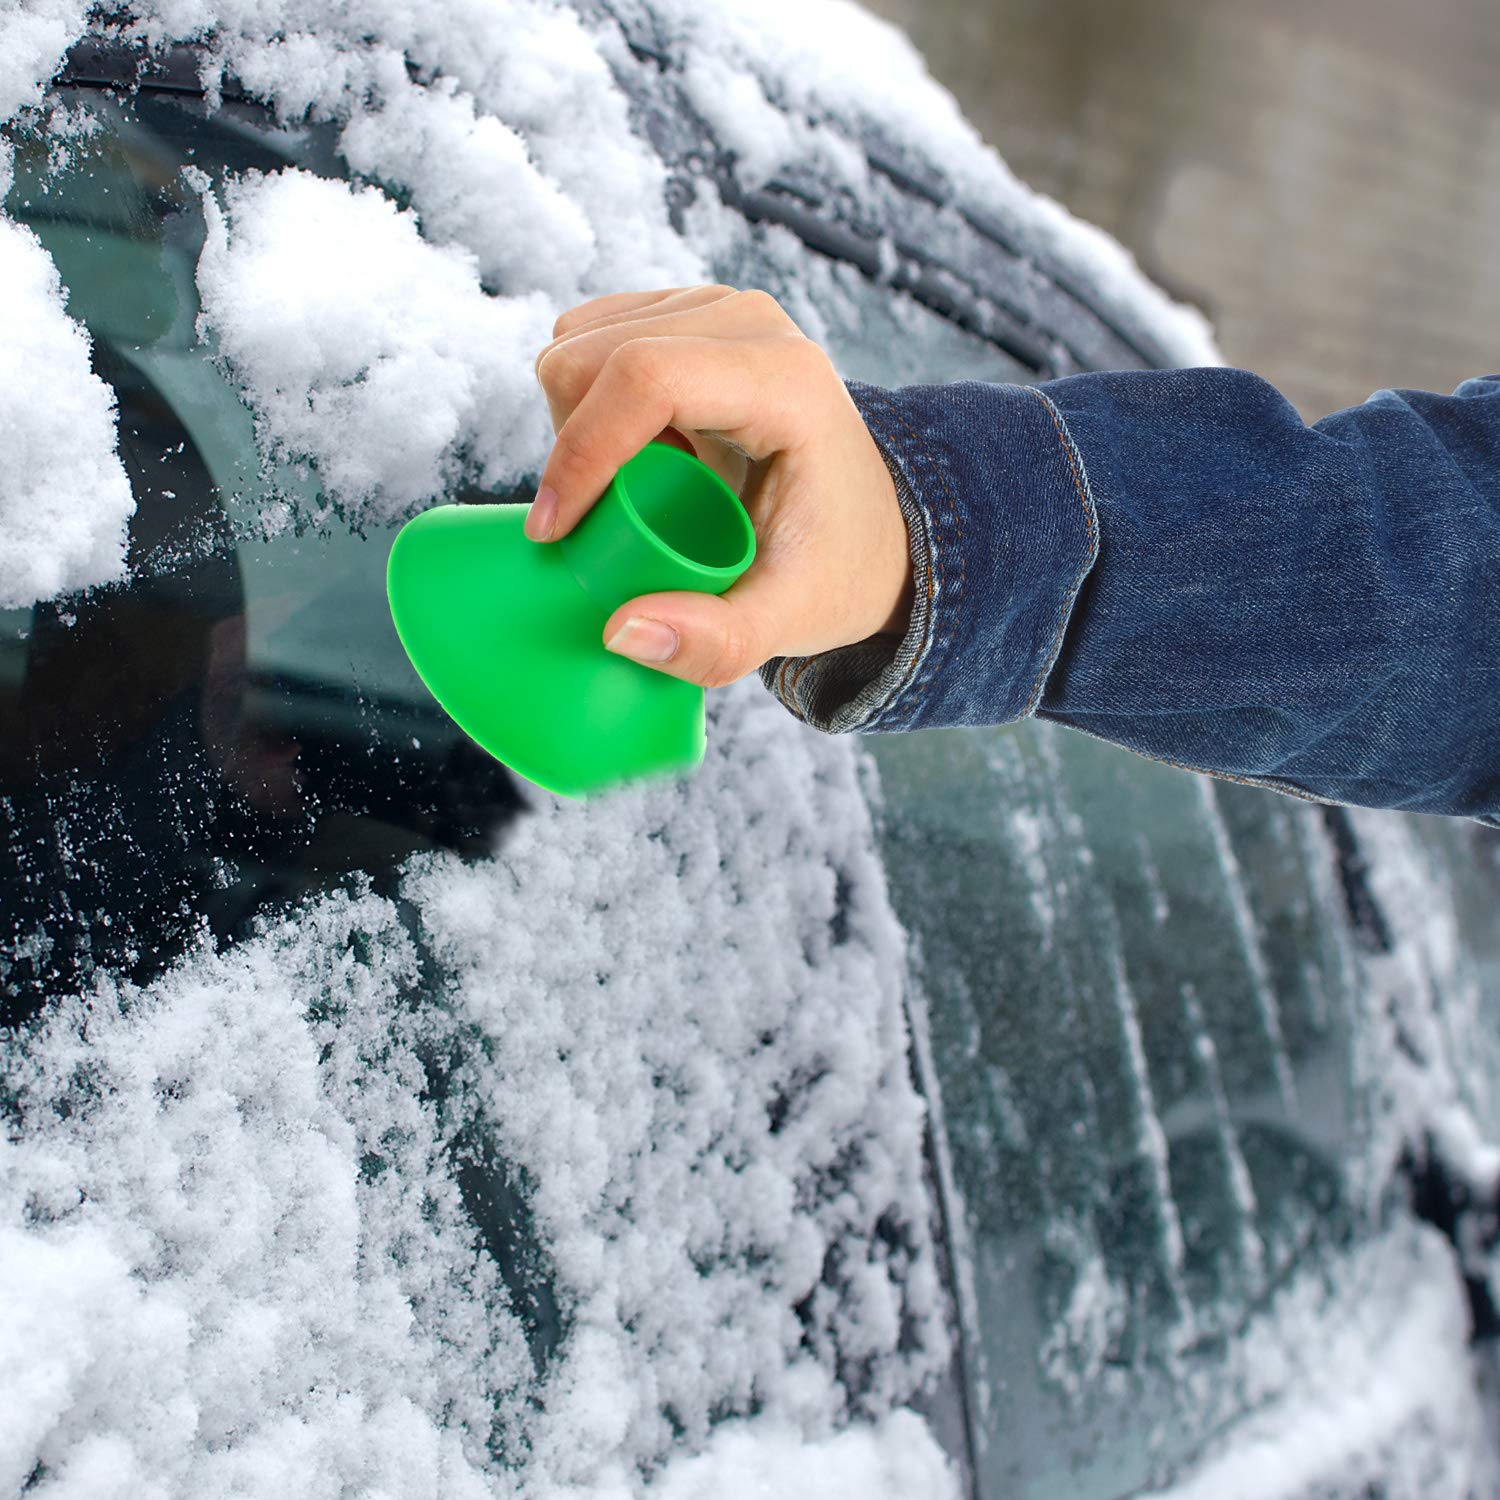 Car Window Windshield Cone Shaped Shovel Tool 2 Size Funnel Scraper with Ice Breakers for Car Supplies Blue and Green 2 Sets Round Ice Scraper